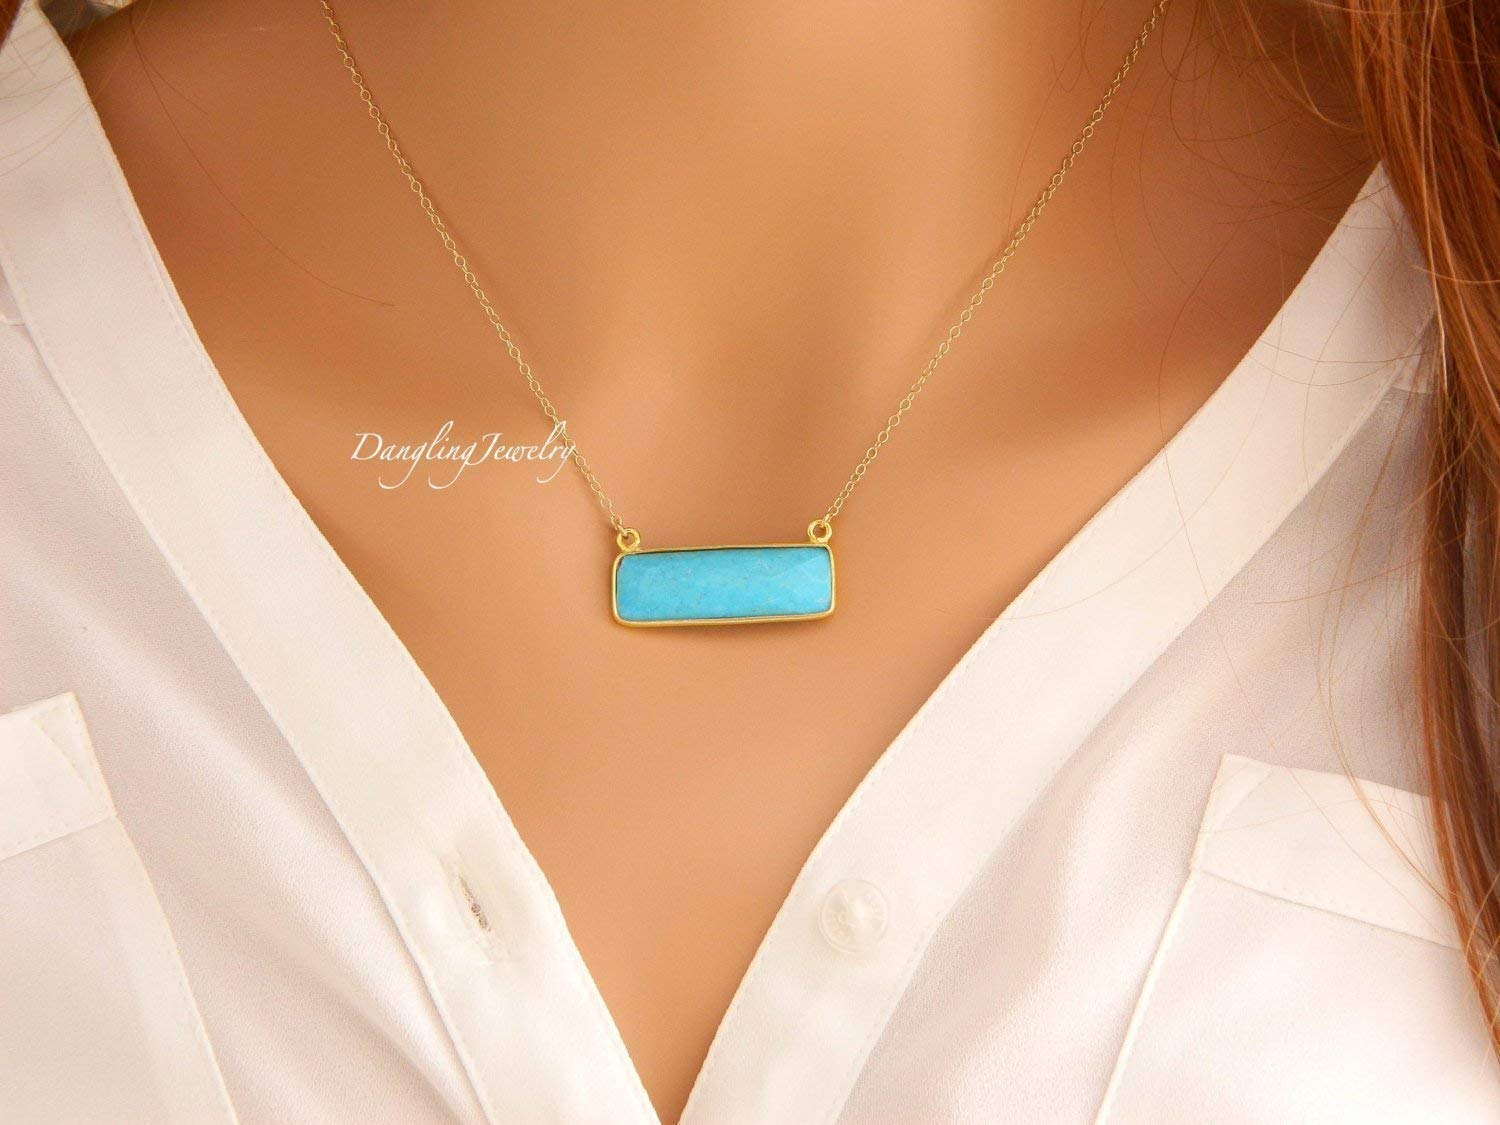 Minimalist Everyday Jewelry Delicate Bar Necklace Womens Gifts Gold Filled Turquoise Necklace December Birthstone Simple Stone Necklace